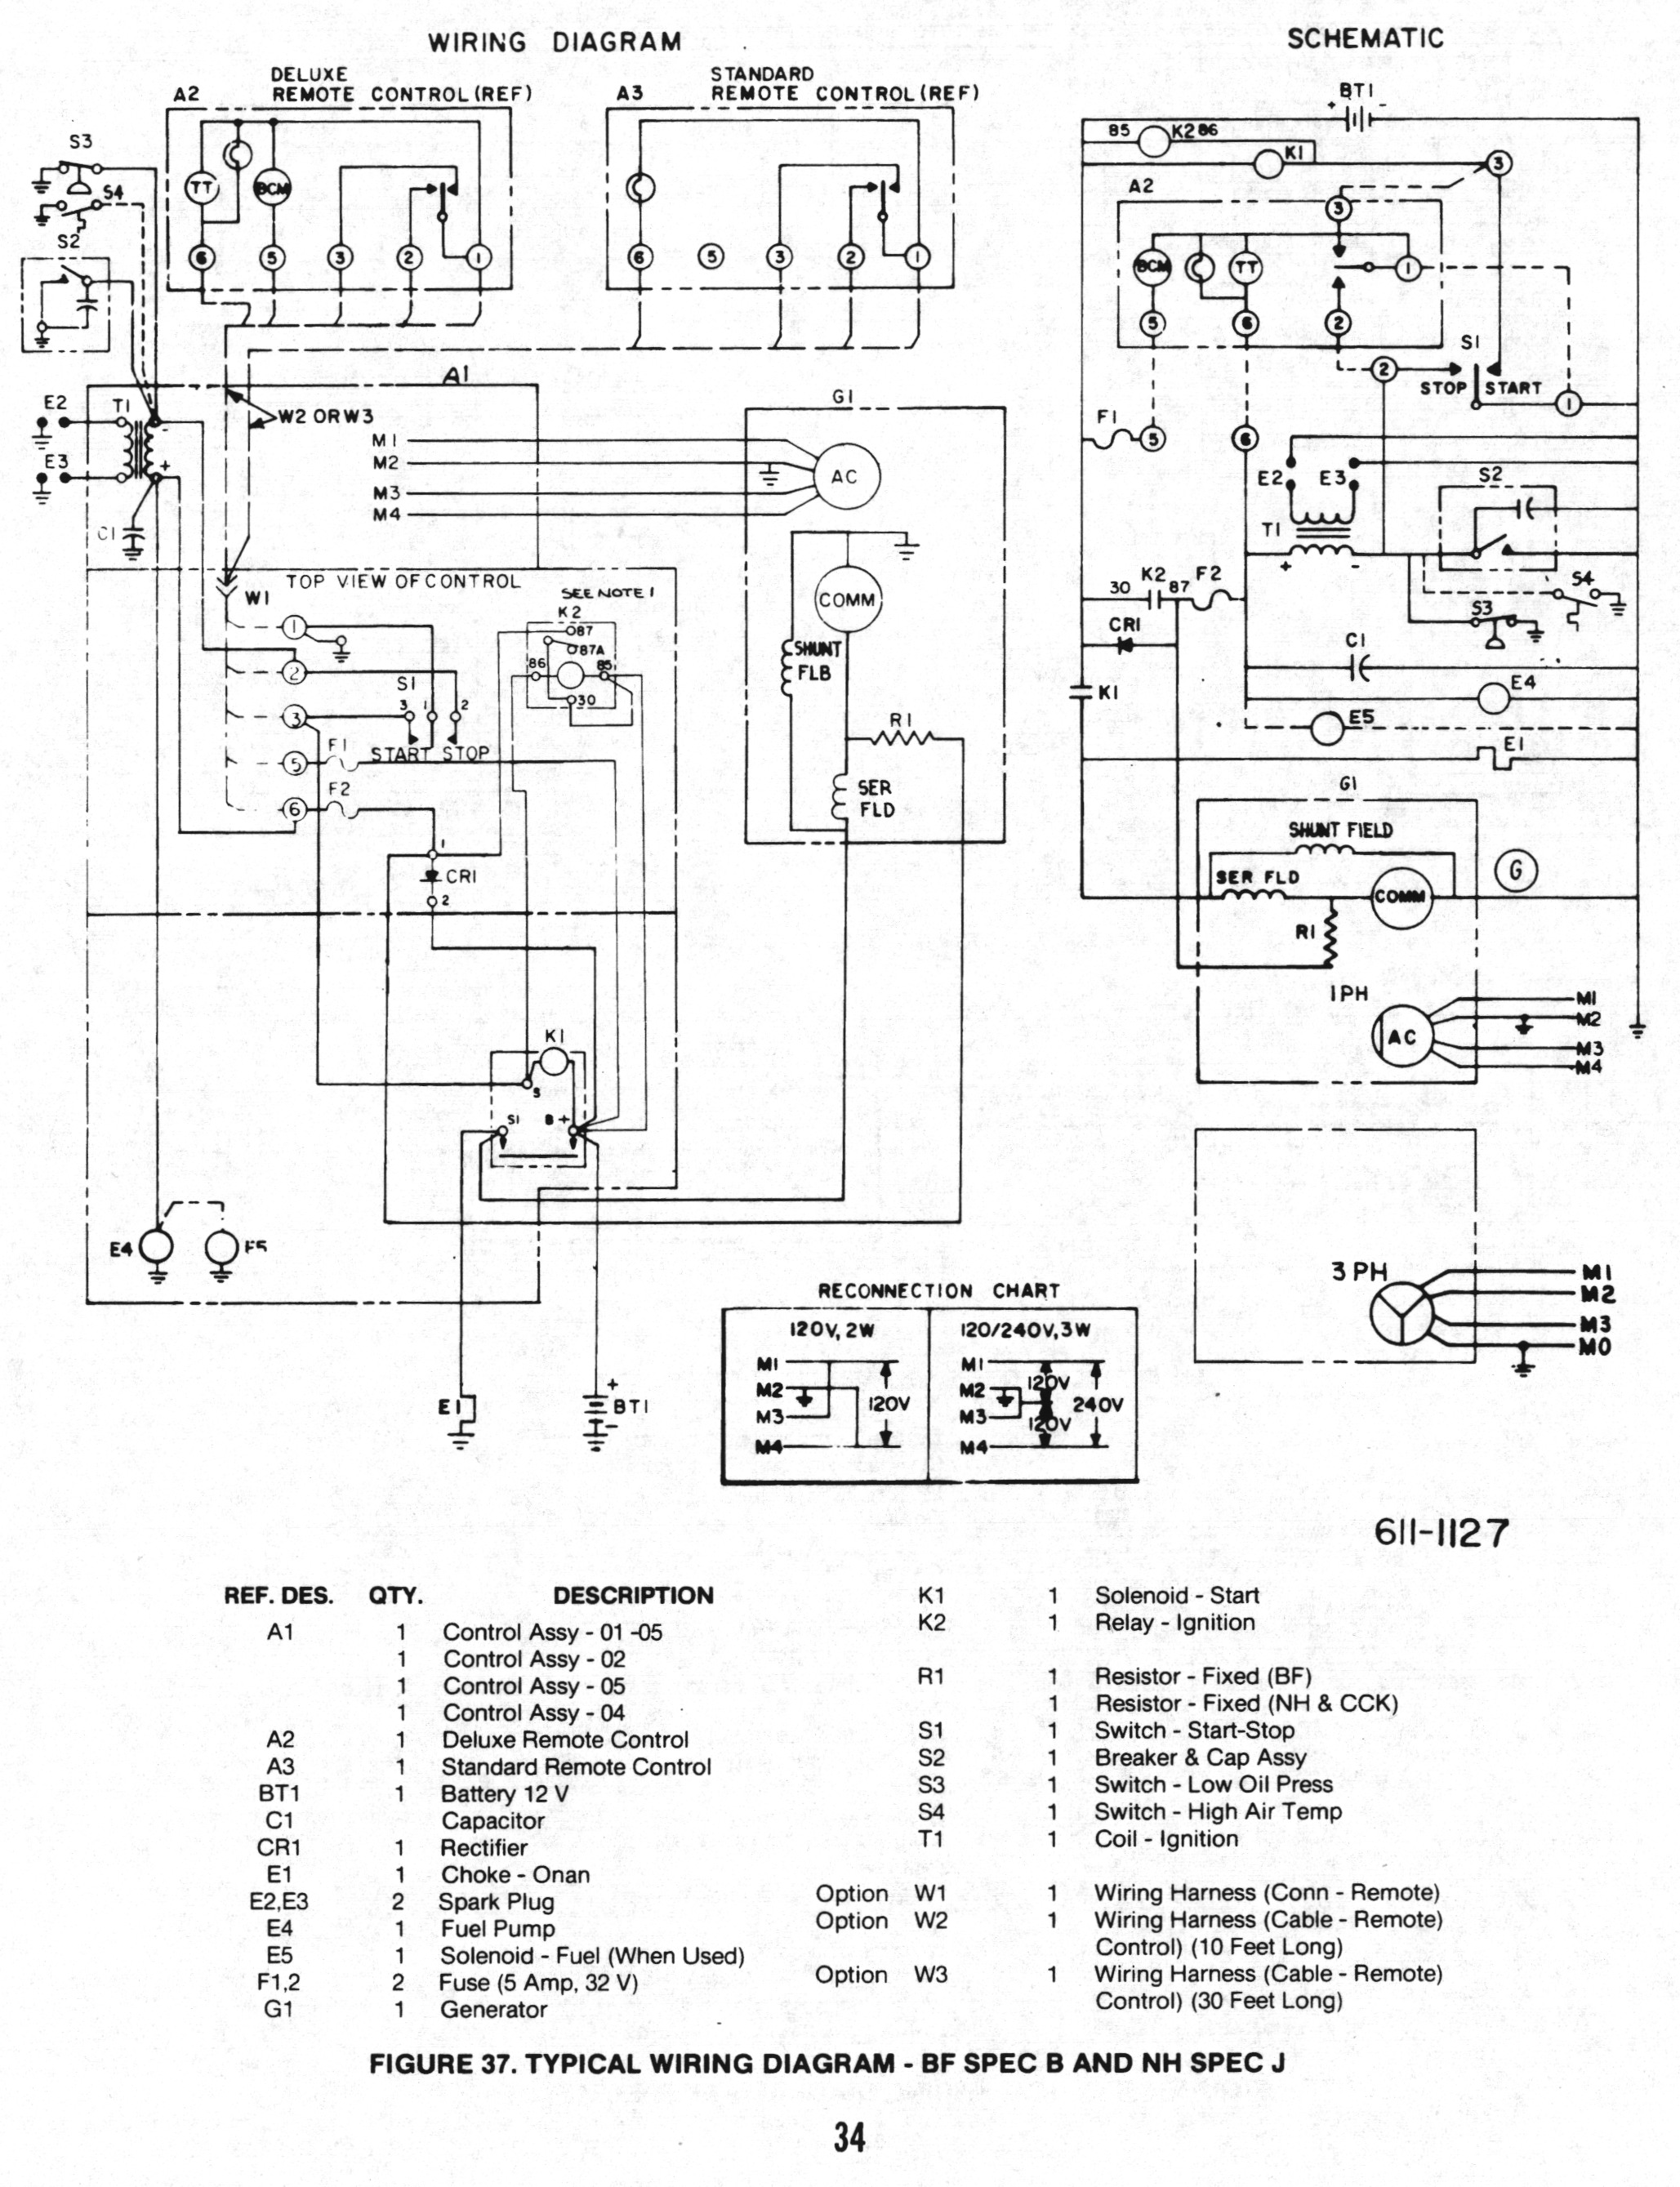 Generac Rv Generator Wiring Diagram In Addition 12 Volt Starter Honeywell Onan Rh Janscooker Com